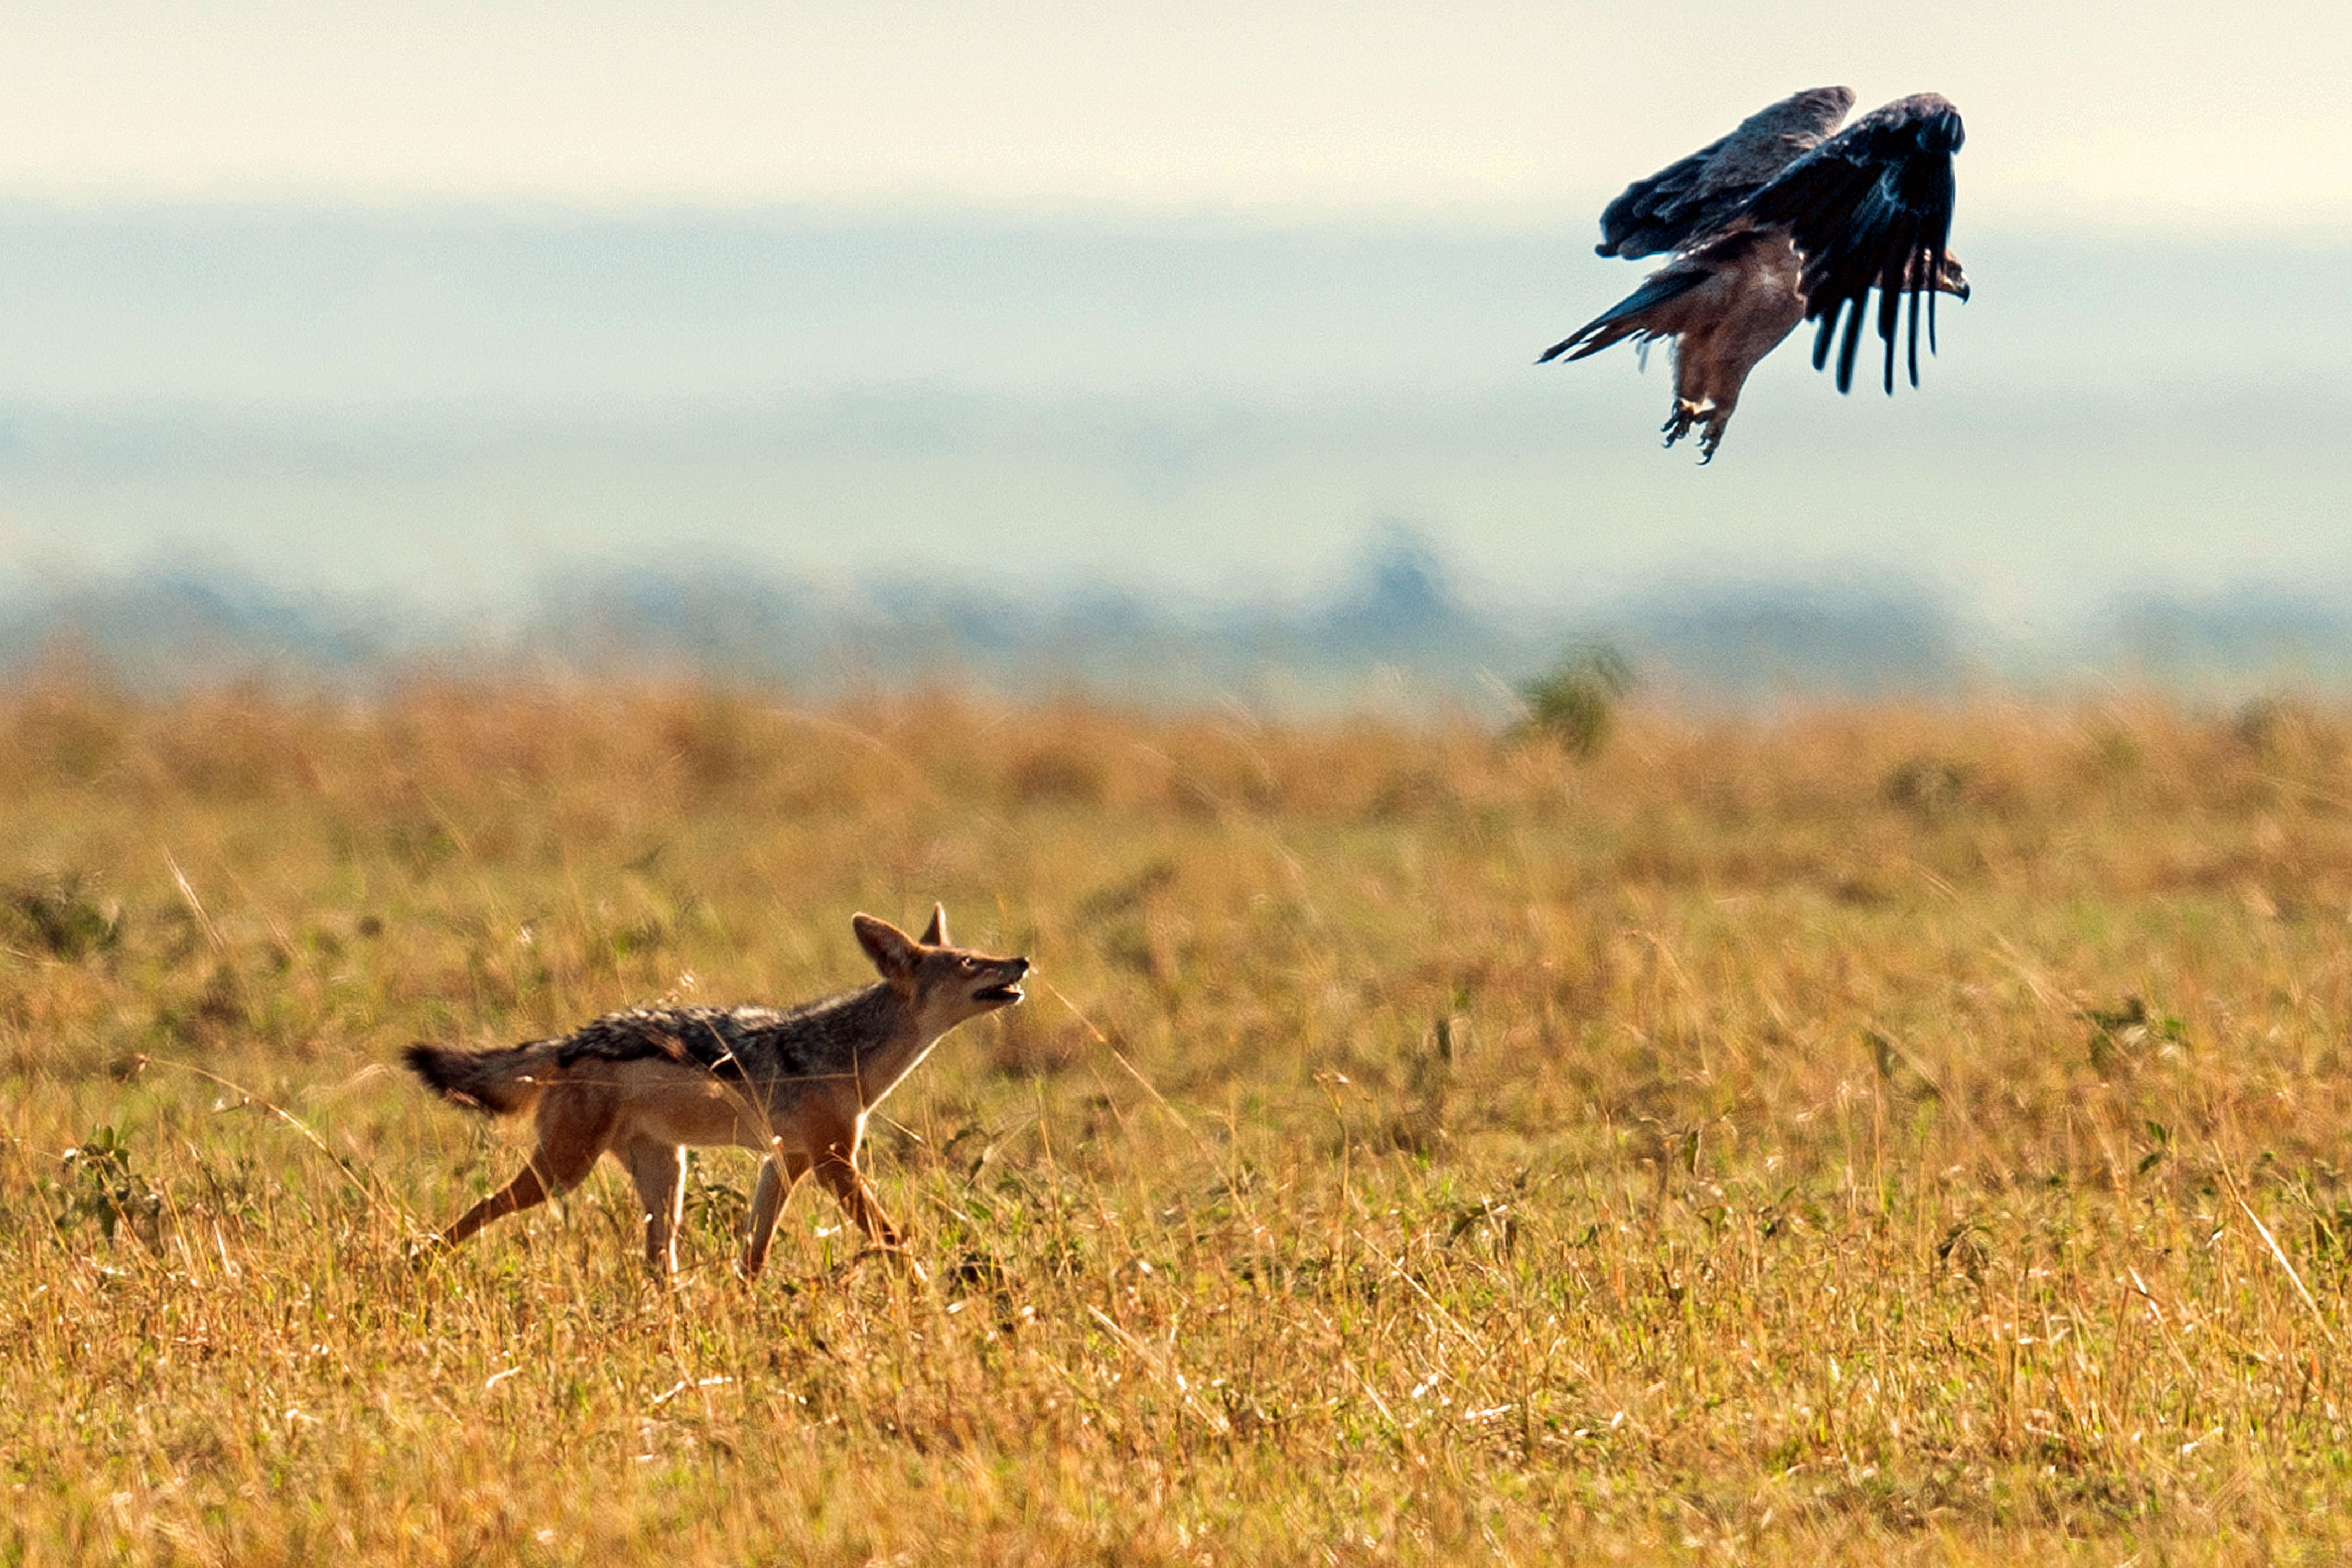 A hungry jackal wanted to attack an ostrich, but changed his mind 87